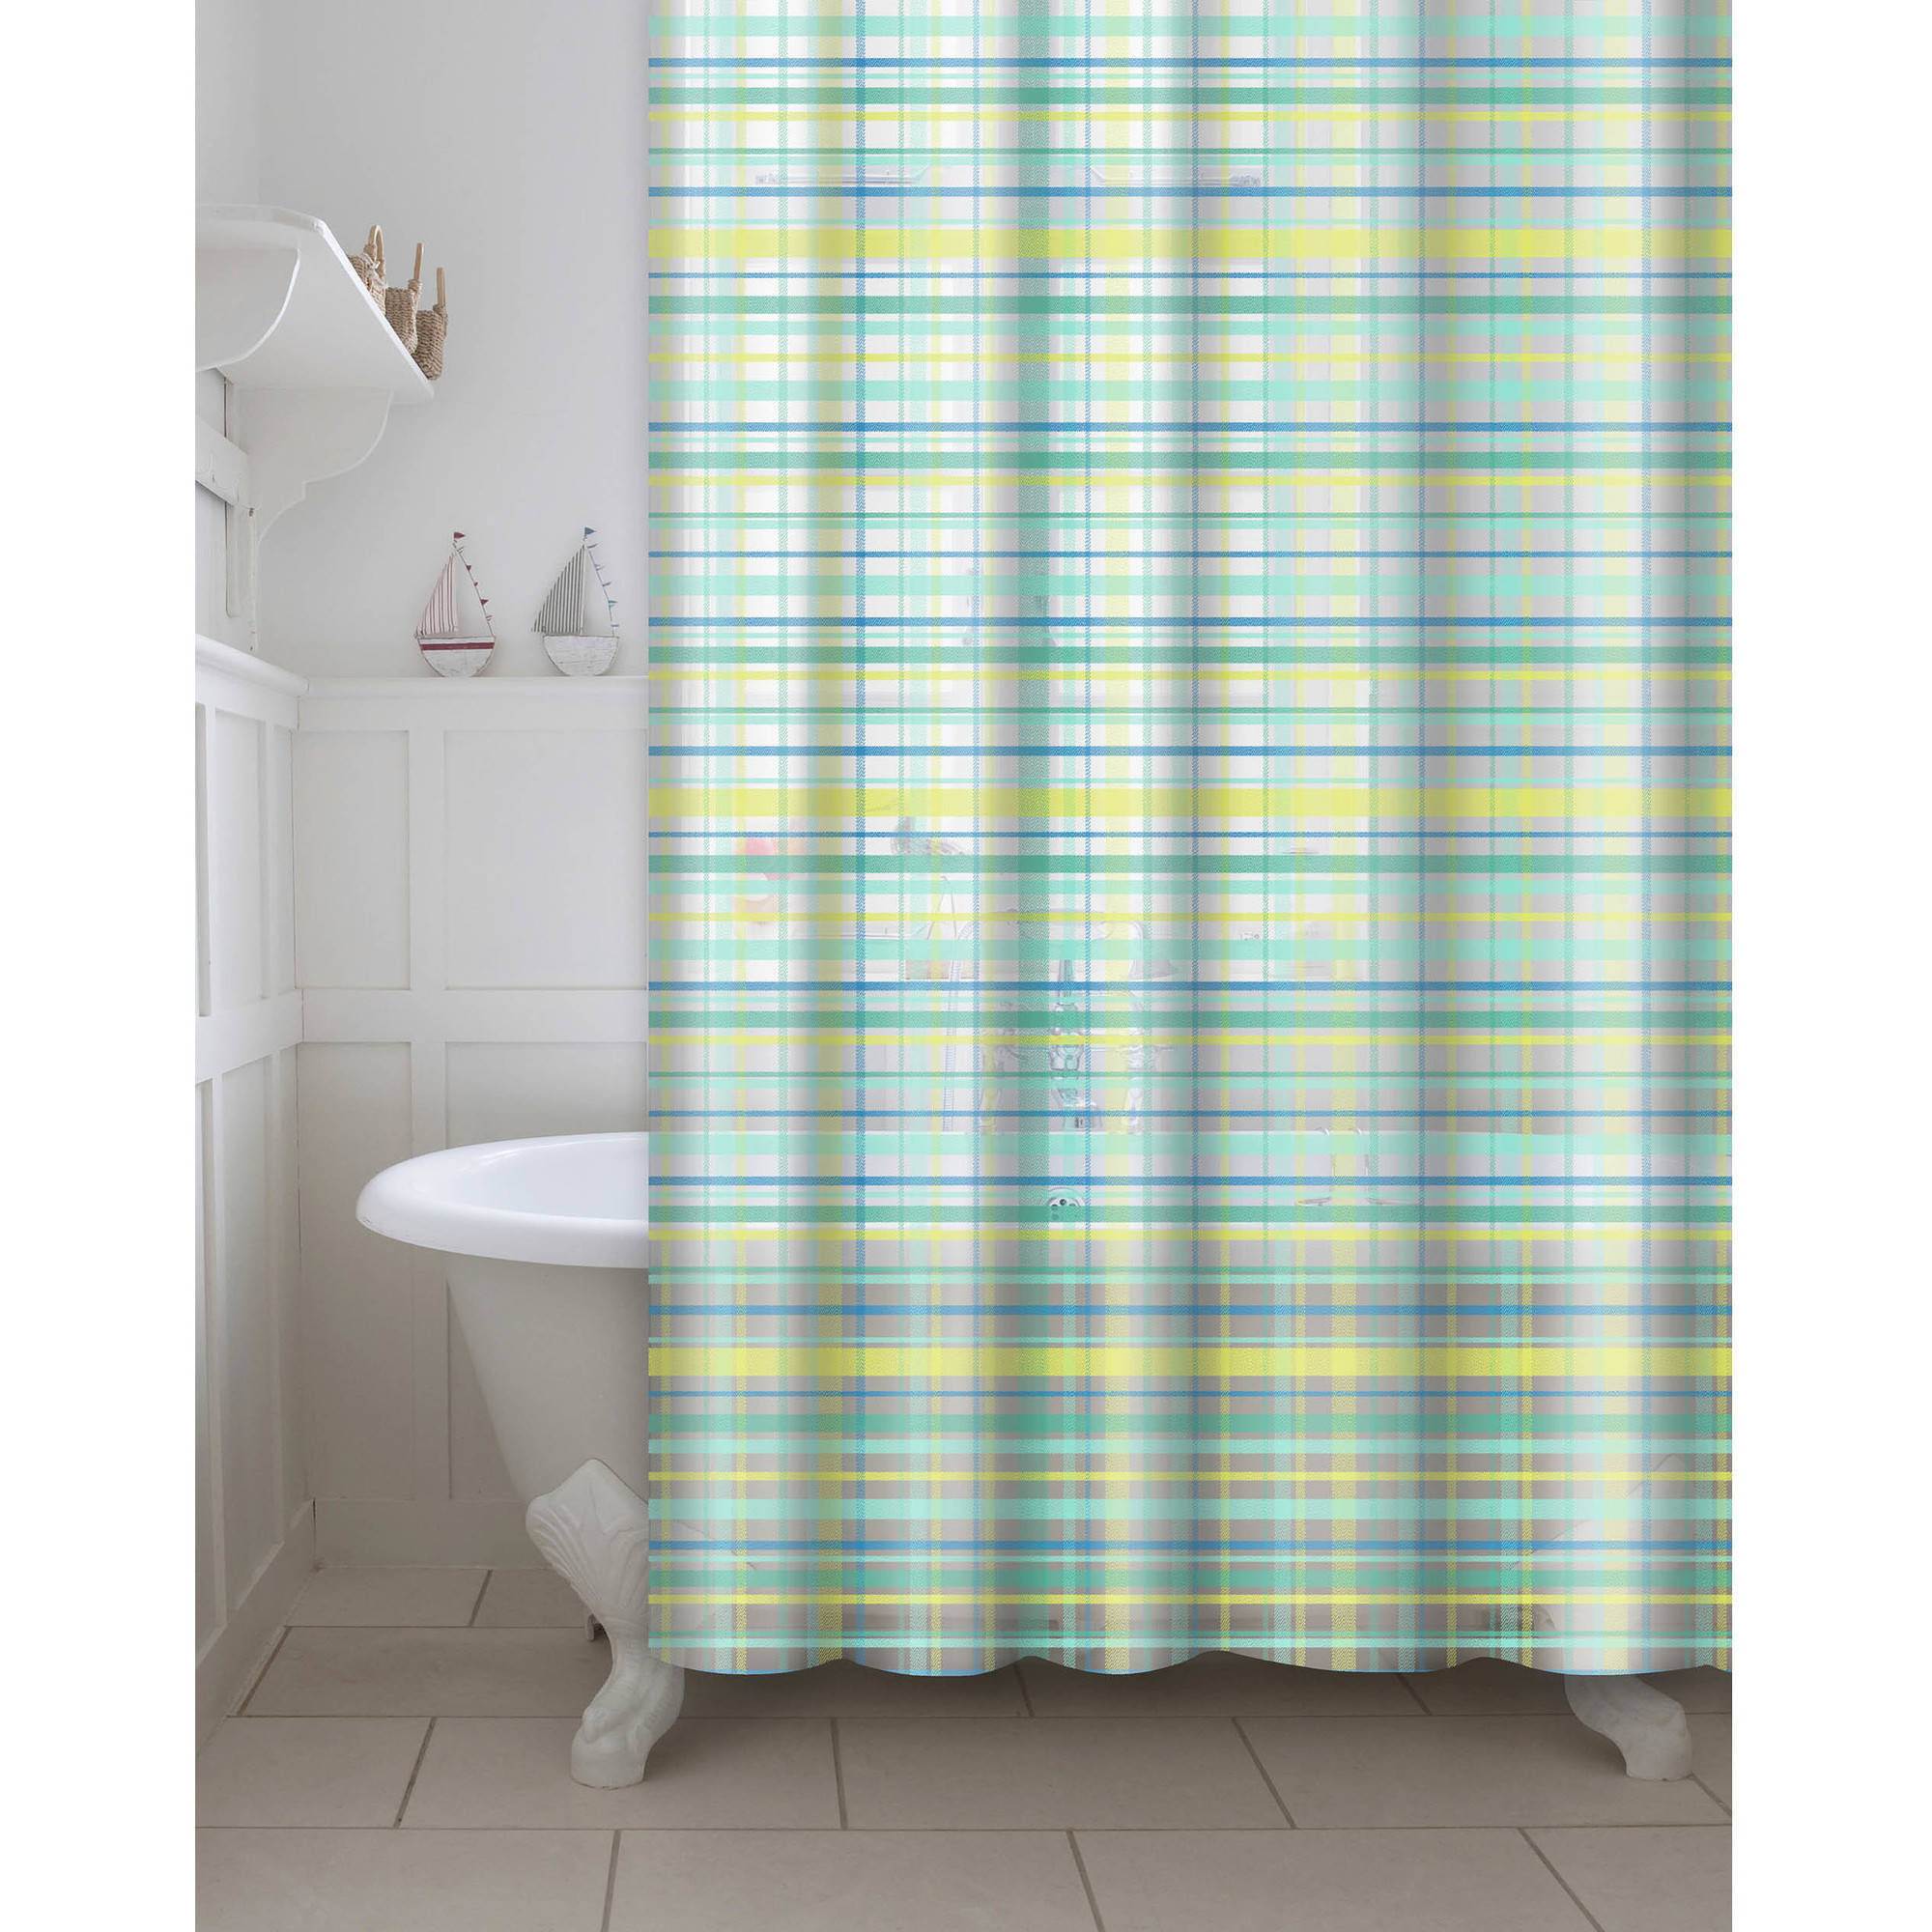 Eco-Friendly Printed Plaid PEVA/EVA Shower Curtain with Metal Roller Hooks